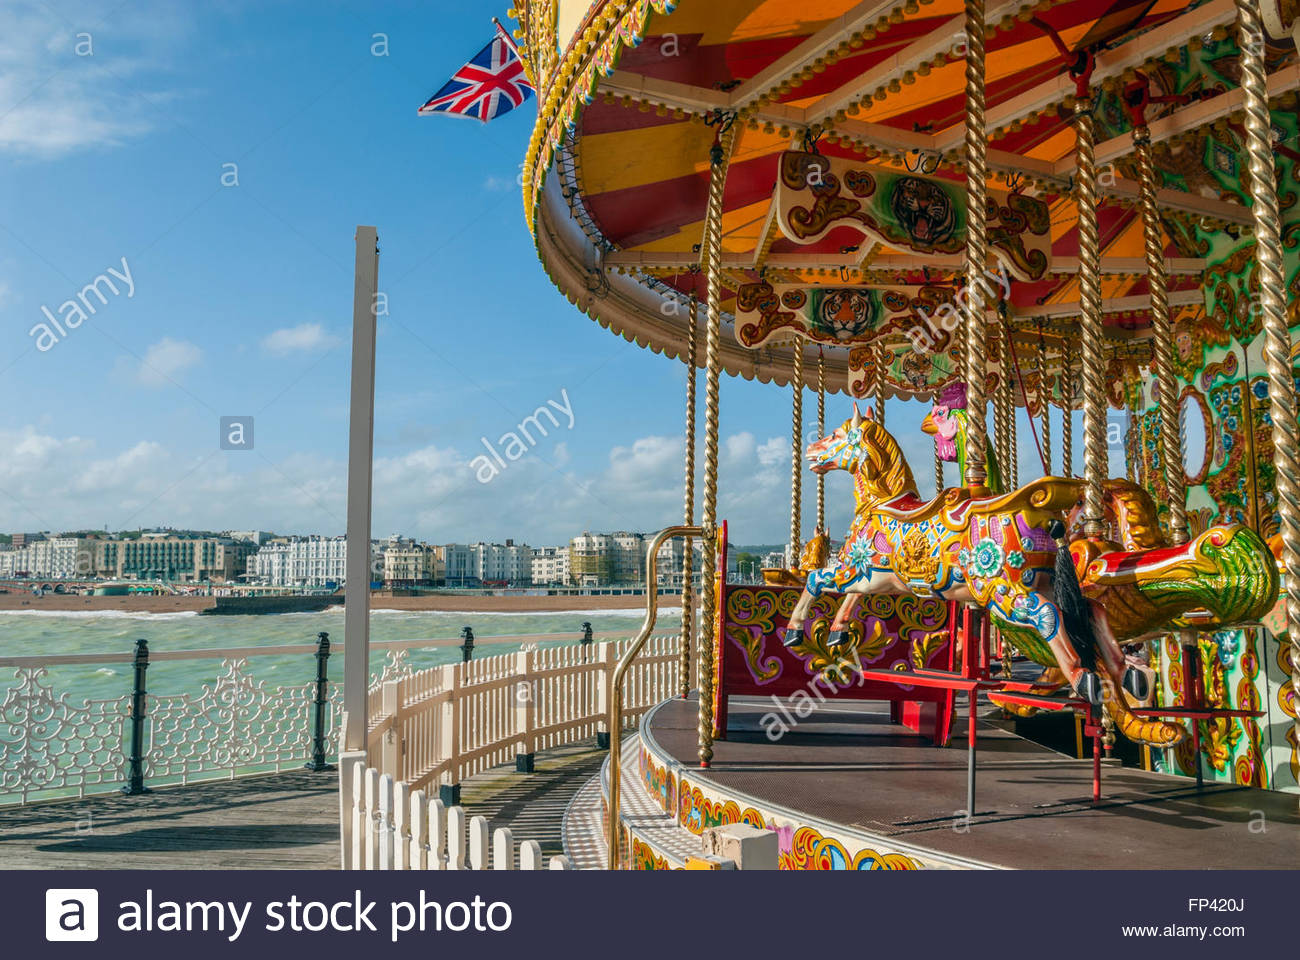 Brighton Pier Karussell, Brighton, East Sussex, England | Brighton Pier Karussell, Brighton, East Sussex, England Stockbild